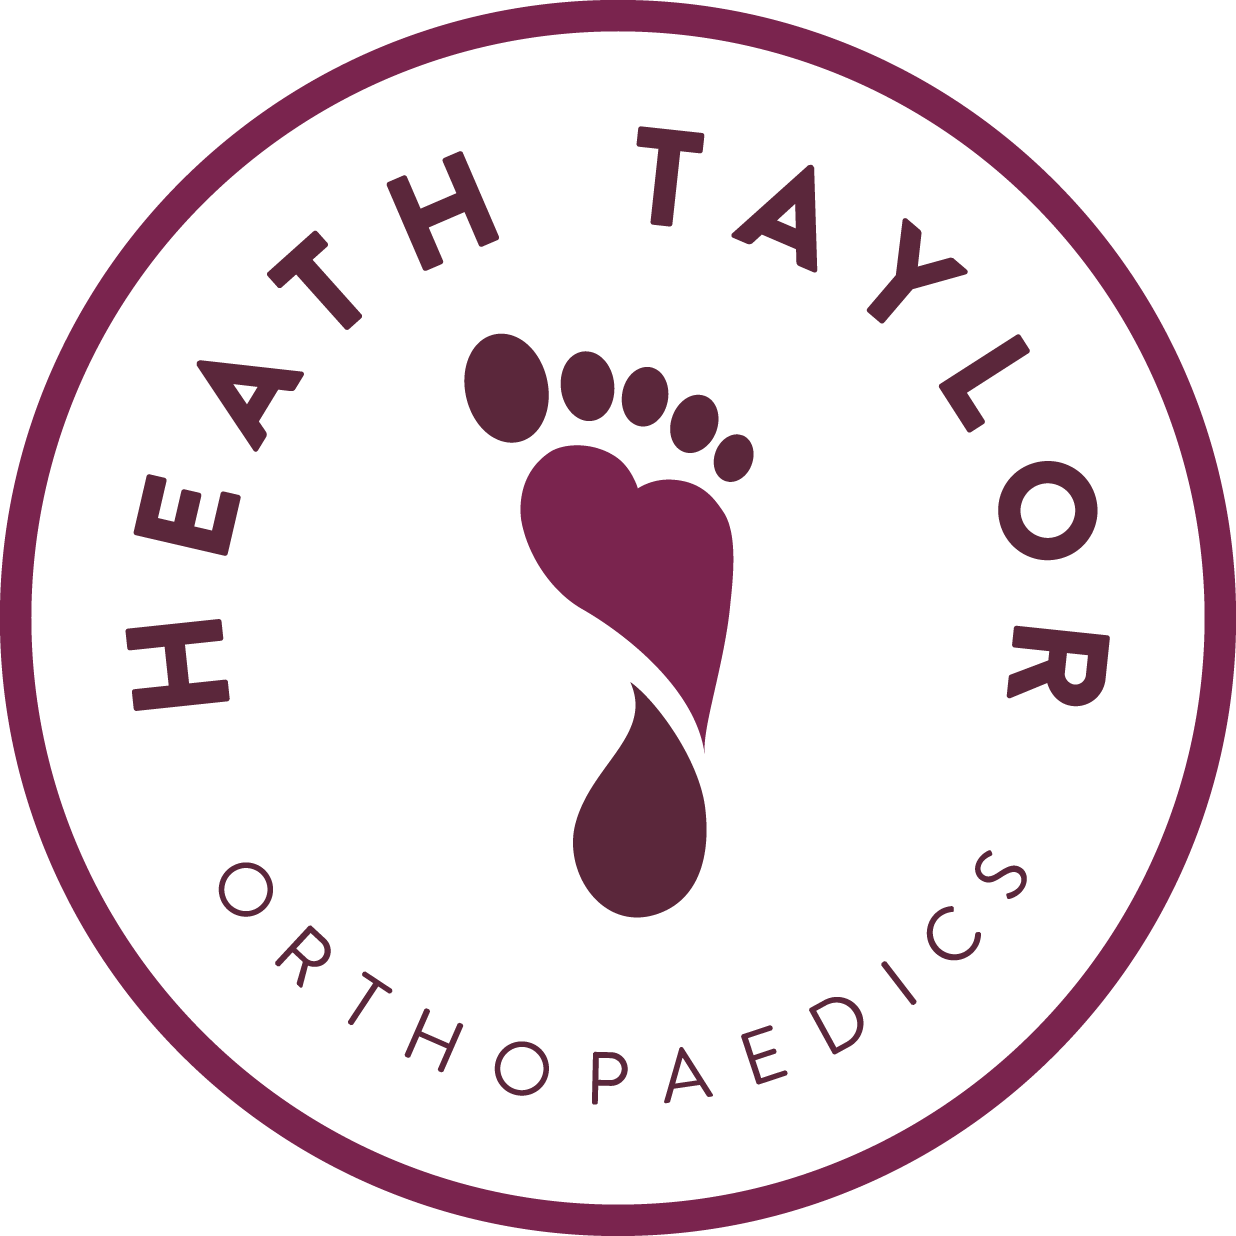 heath taylor orthopaedics foot and ankle logo